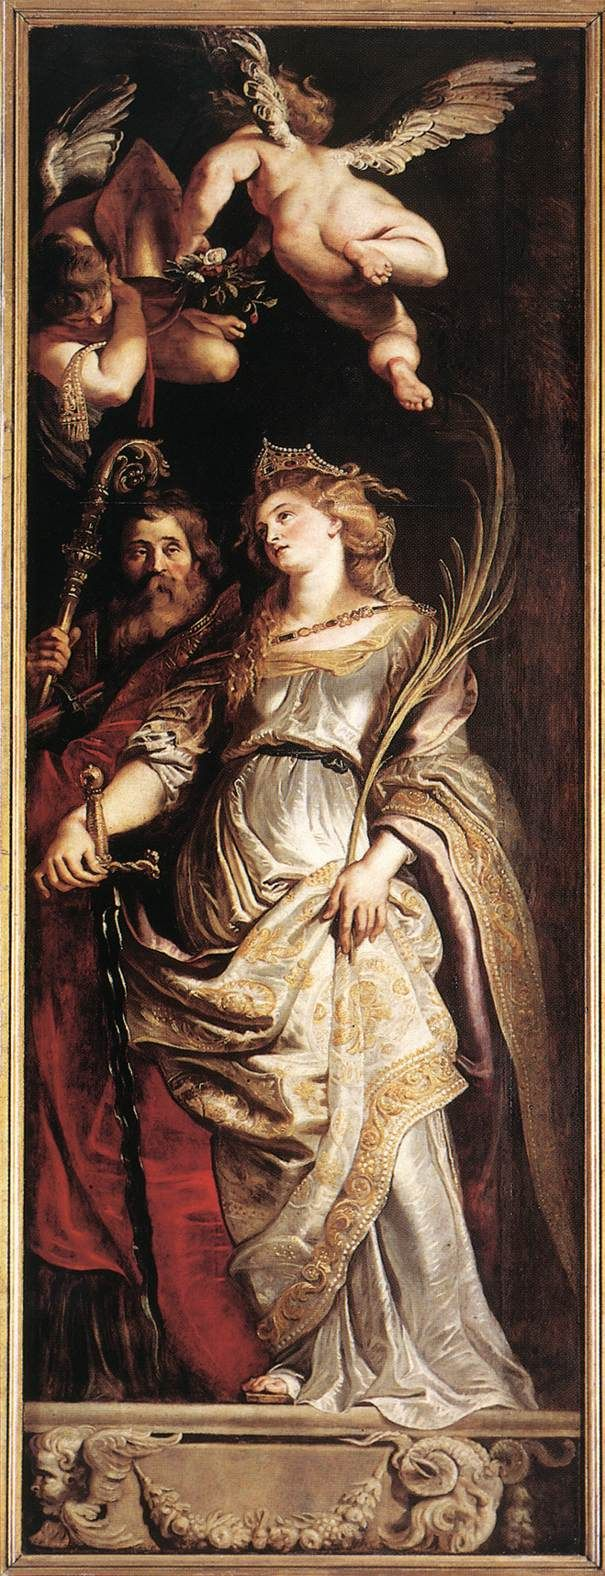 Sts Eligius and Catherine Peter Paul Rubens 1610 Style: Baroque Genre: religious painting Technique: oil